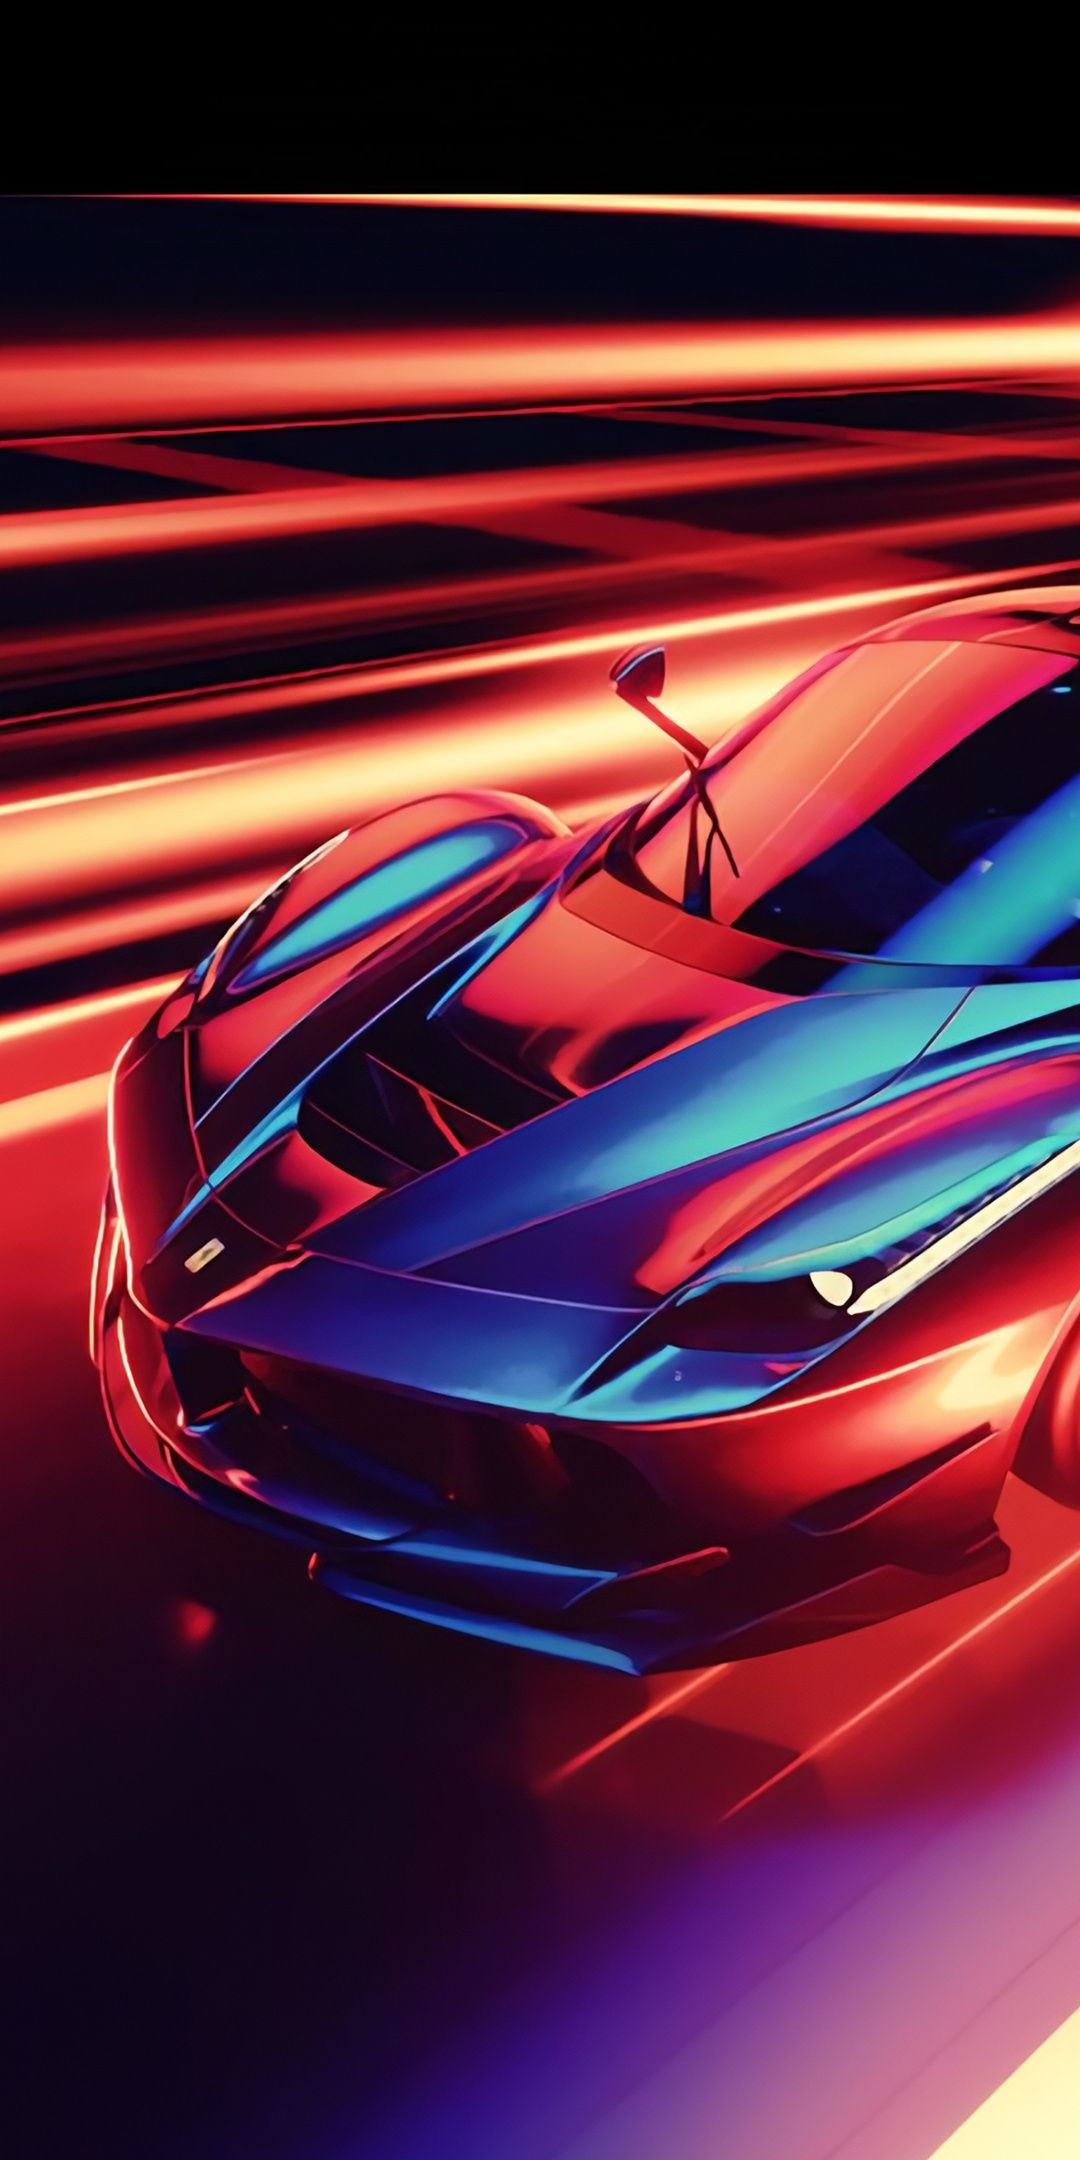 Cgi Art Ferrari Sports Car 1080x2160 Wallpaper Supercars Wallpaper Ferrari Samsung Wallpaper